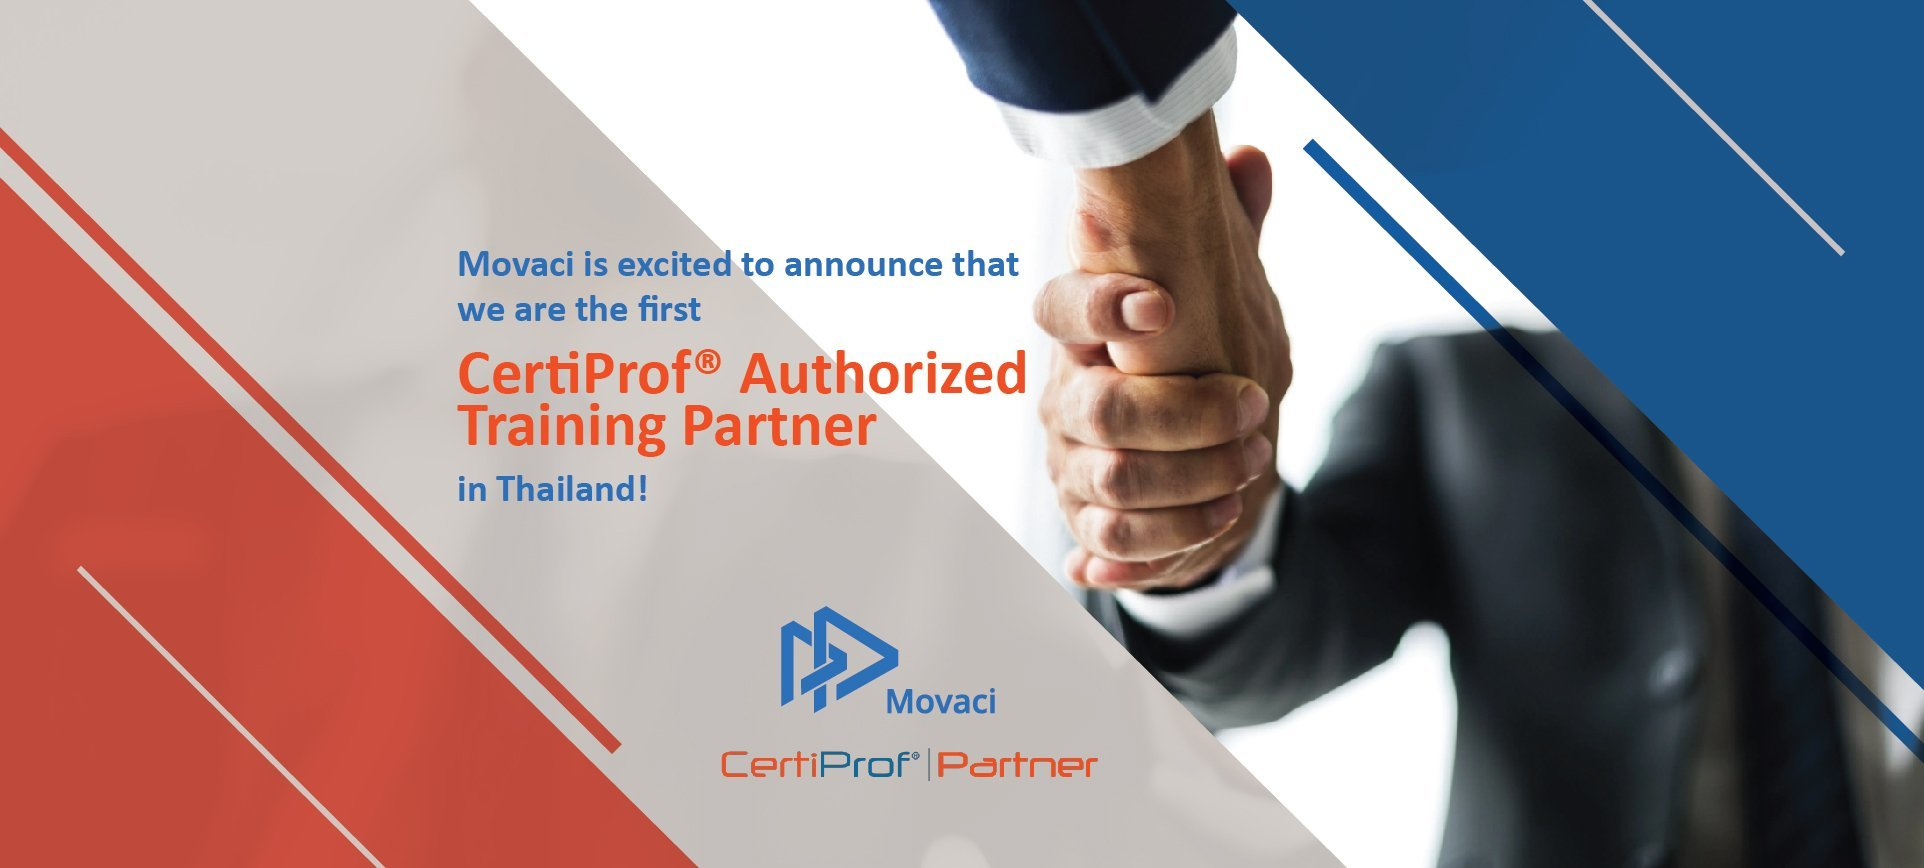 Movaci is the first CertiProf® Authorized Training Partner in Thailand! 1